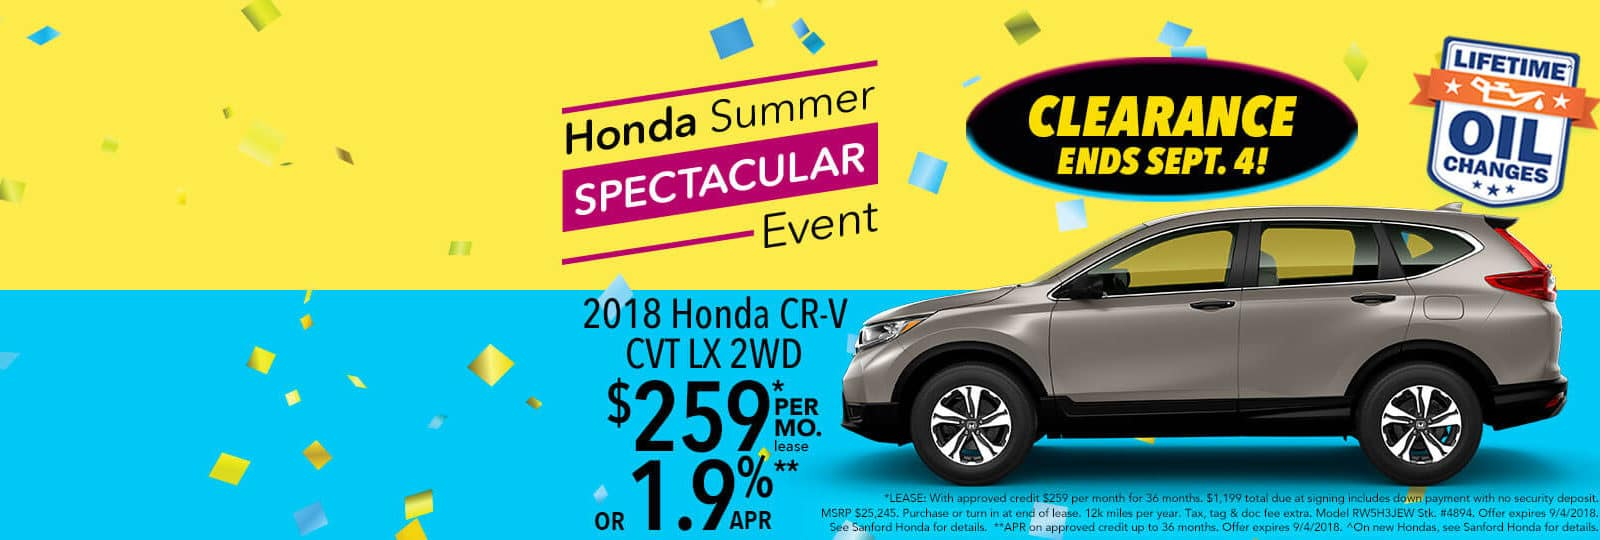 2018 Honda CR V Sanford Odyssey Summer Event Slider